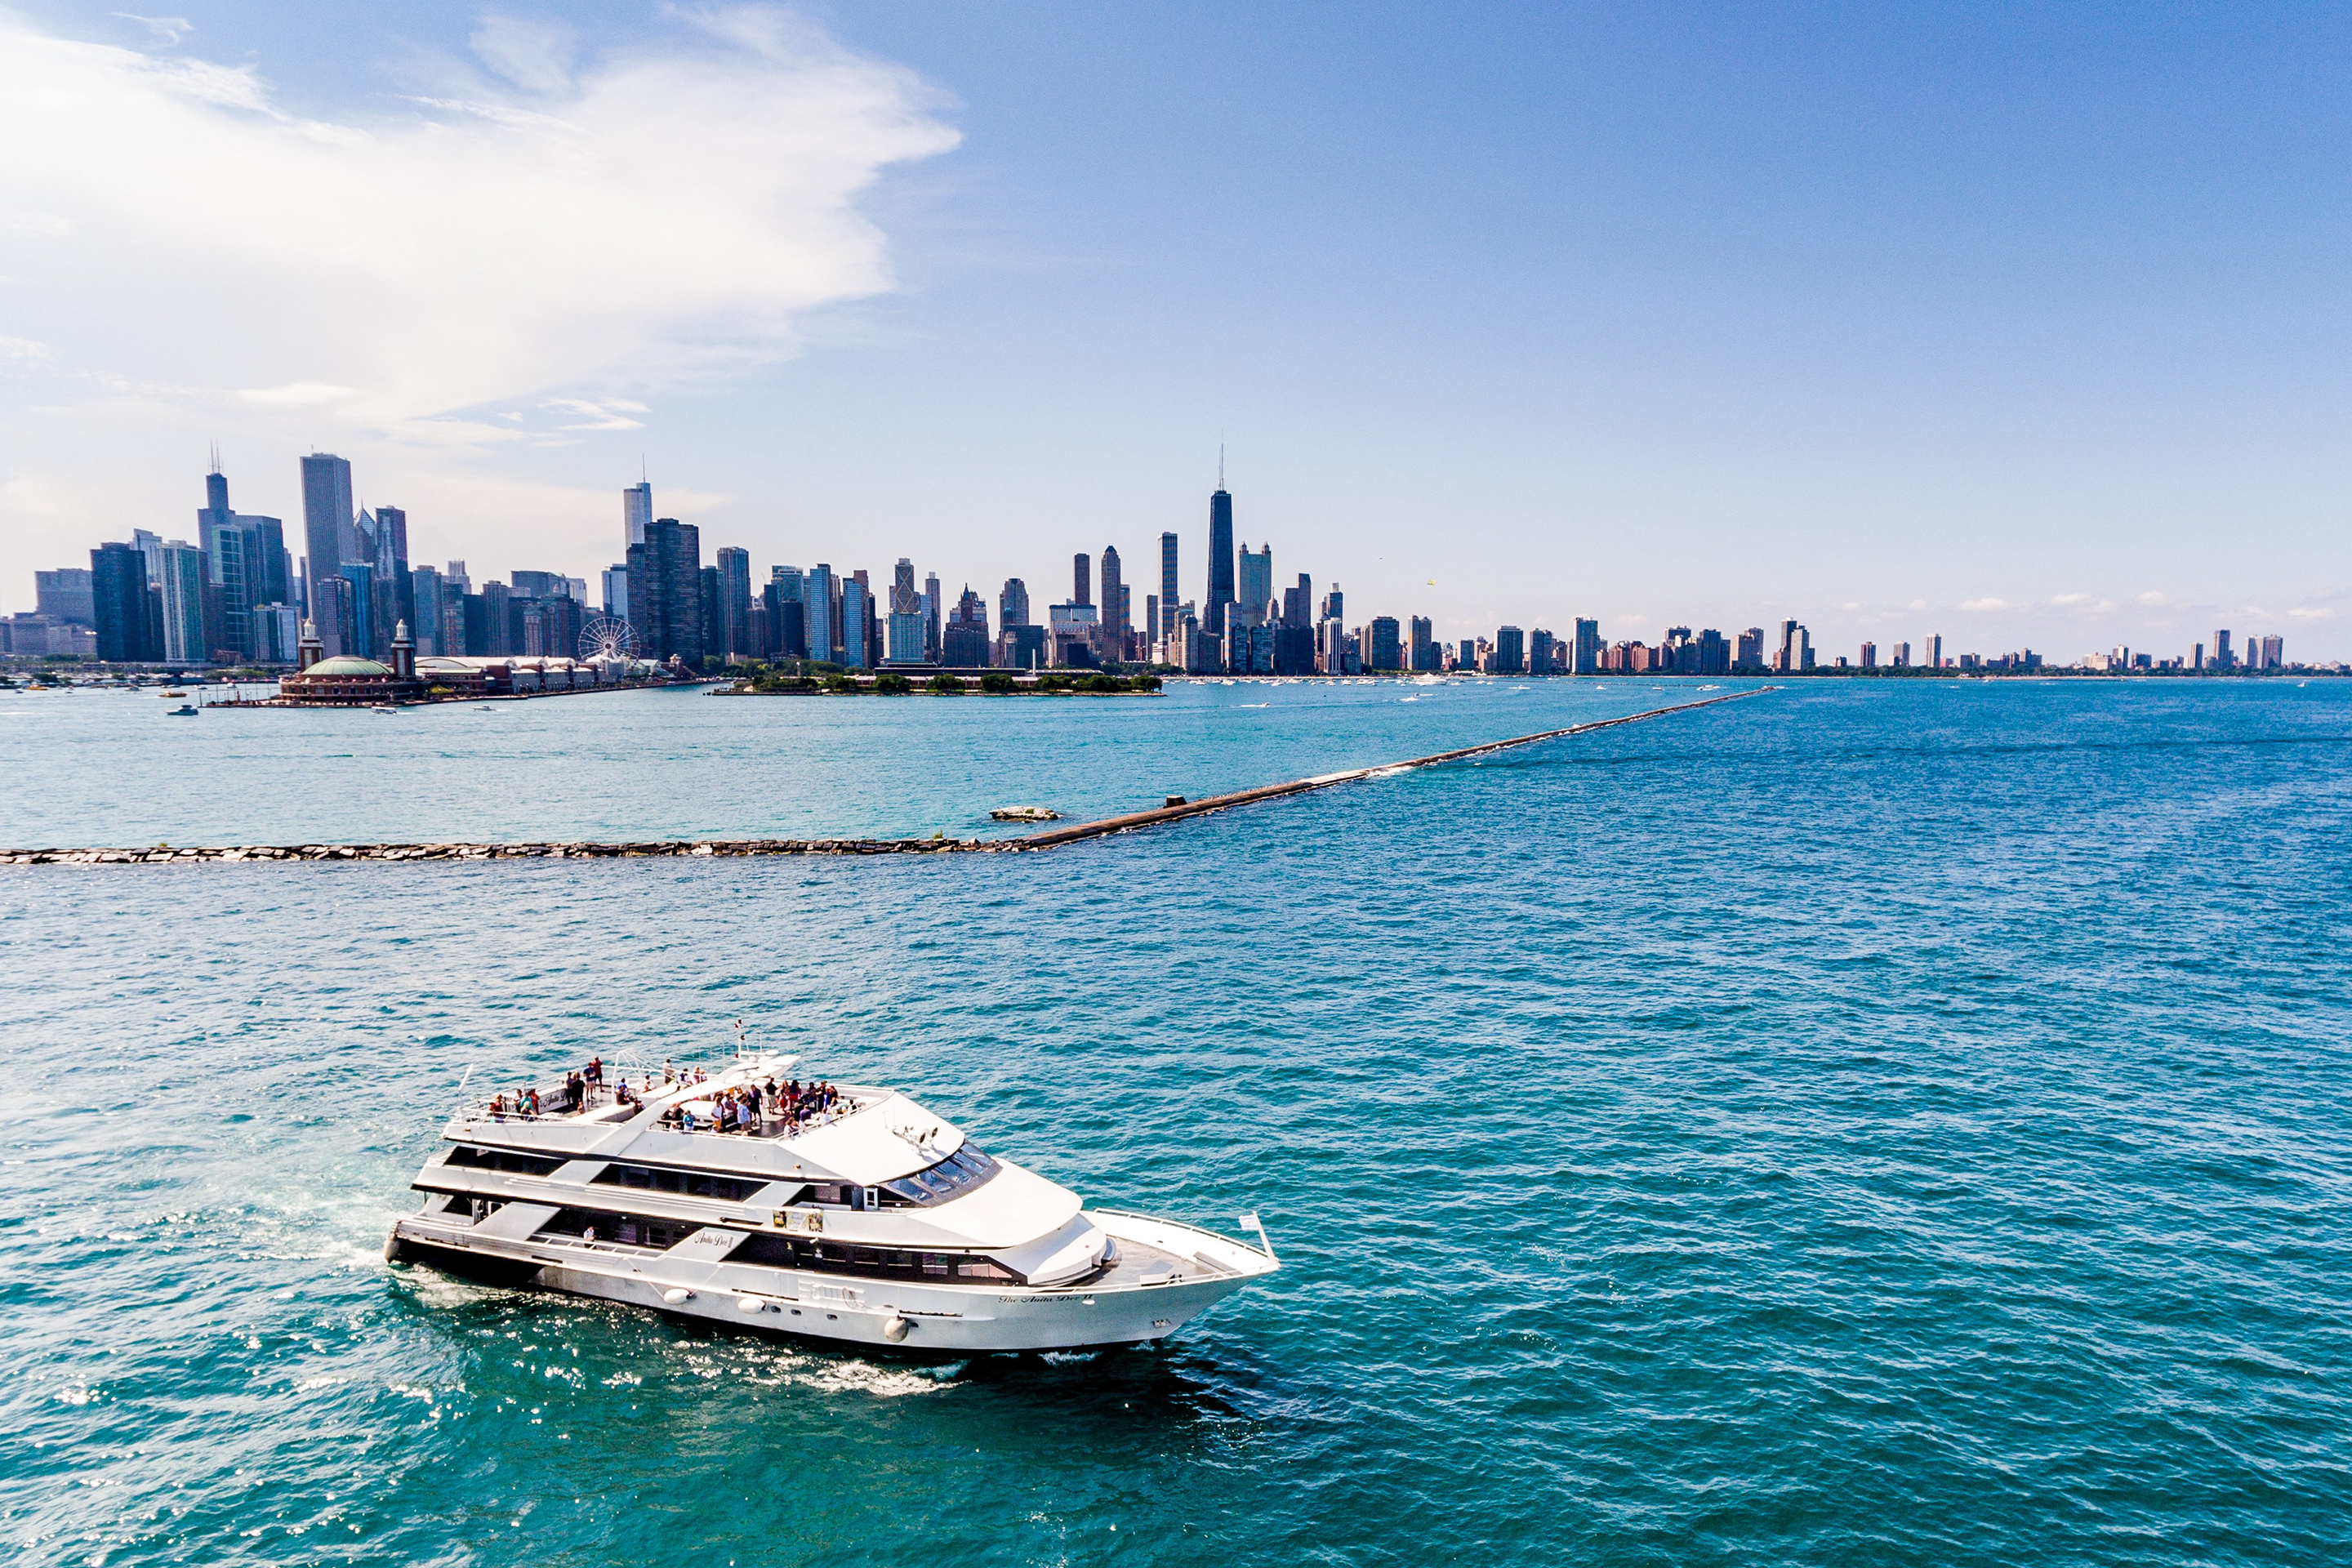 Anita Dee II yacht overlooking Chicago.